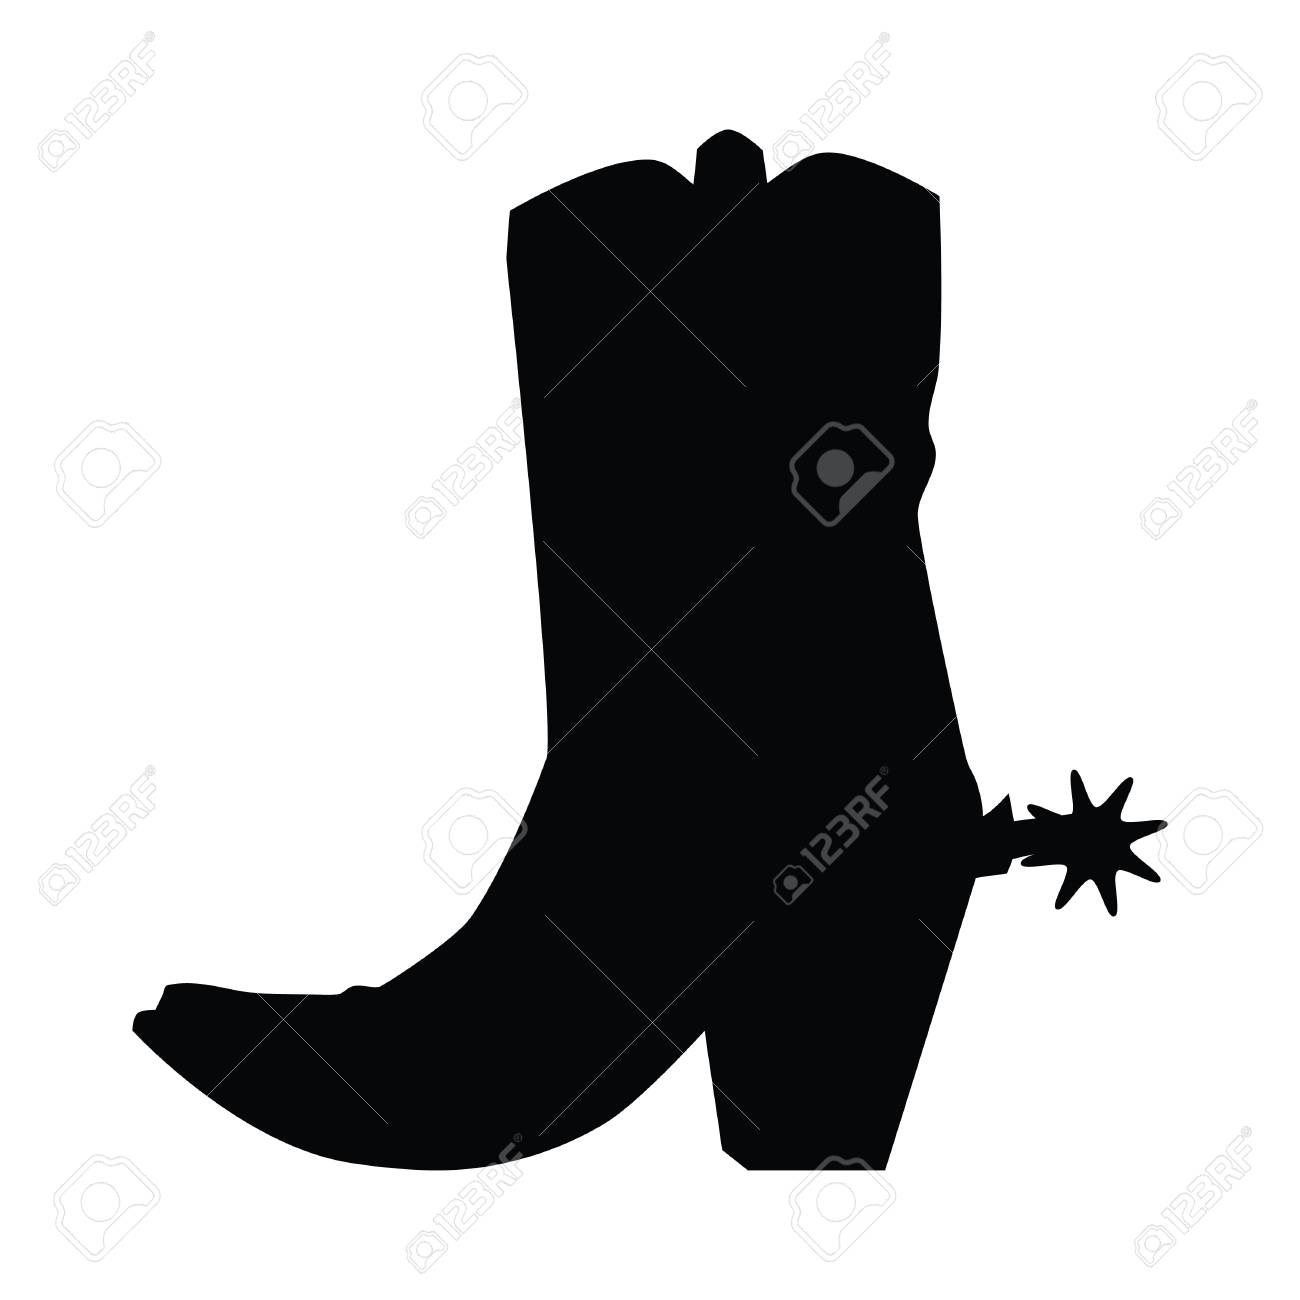 A black and white silhouette of a cowboy boot with Spur.